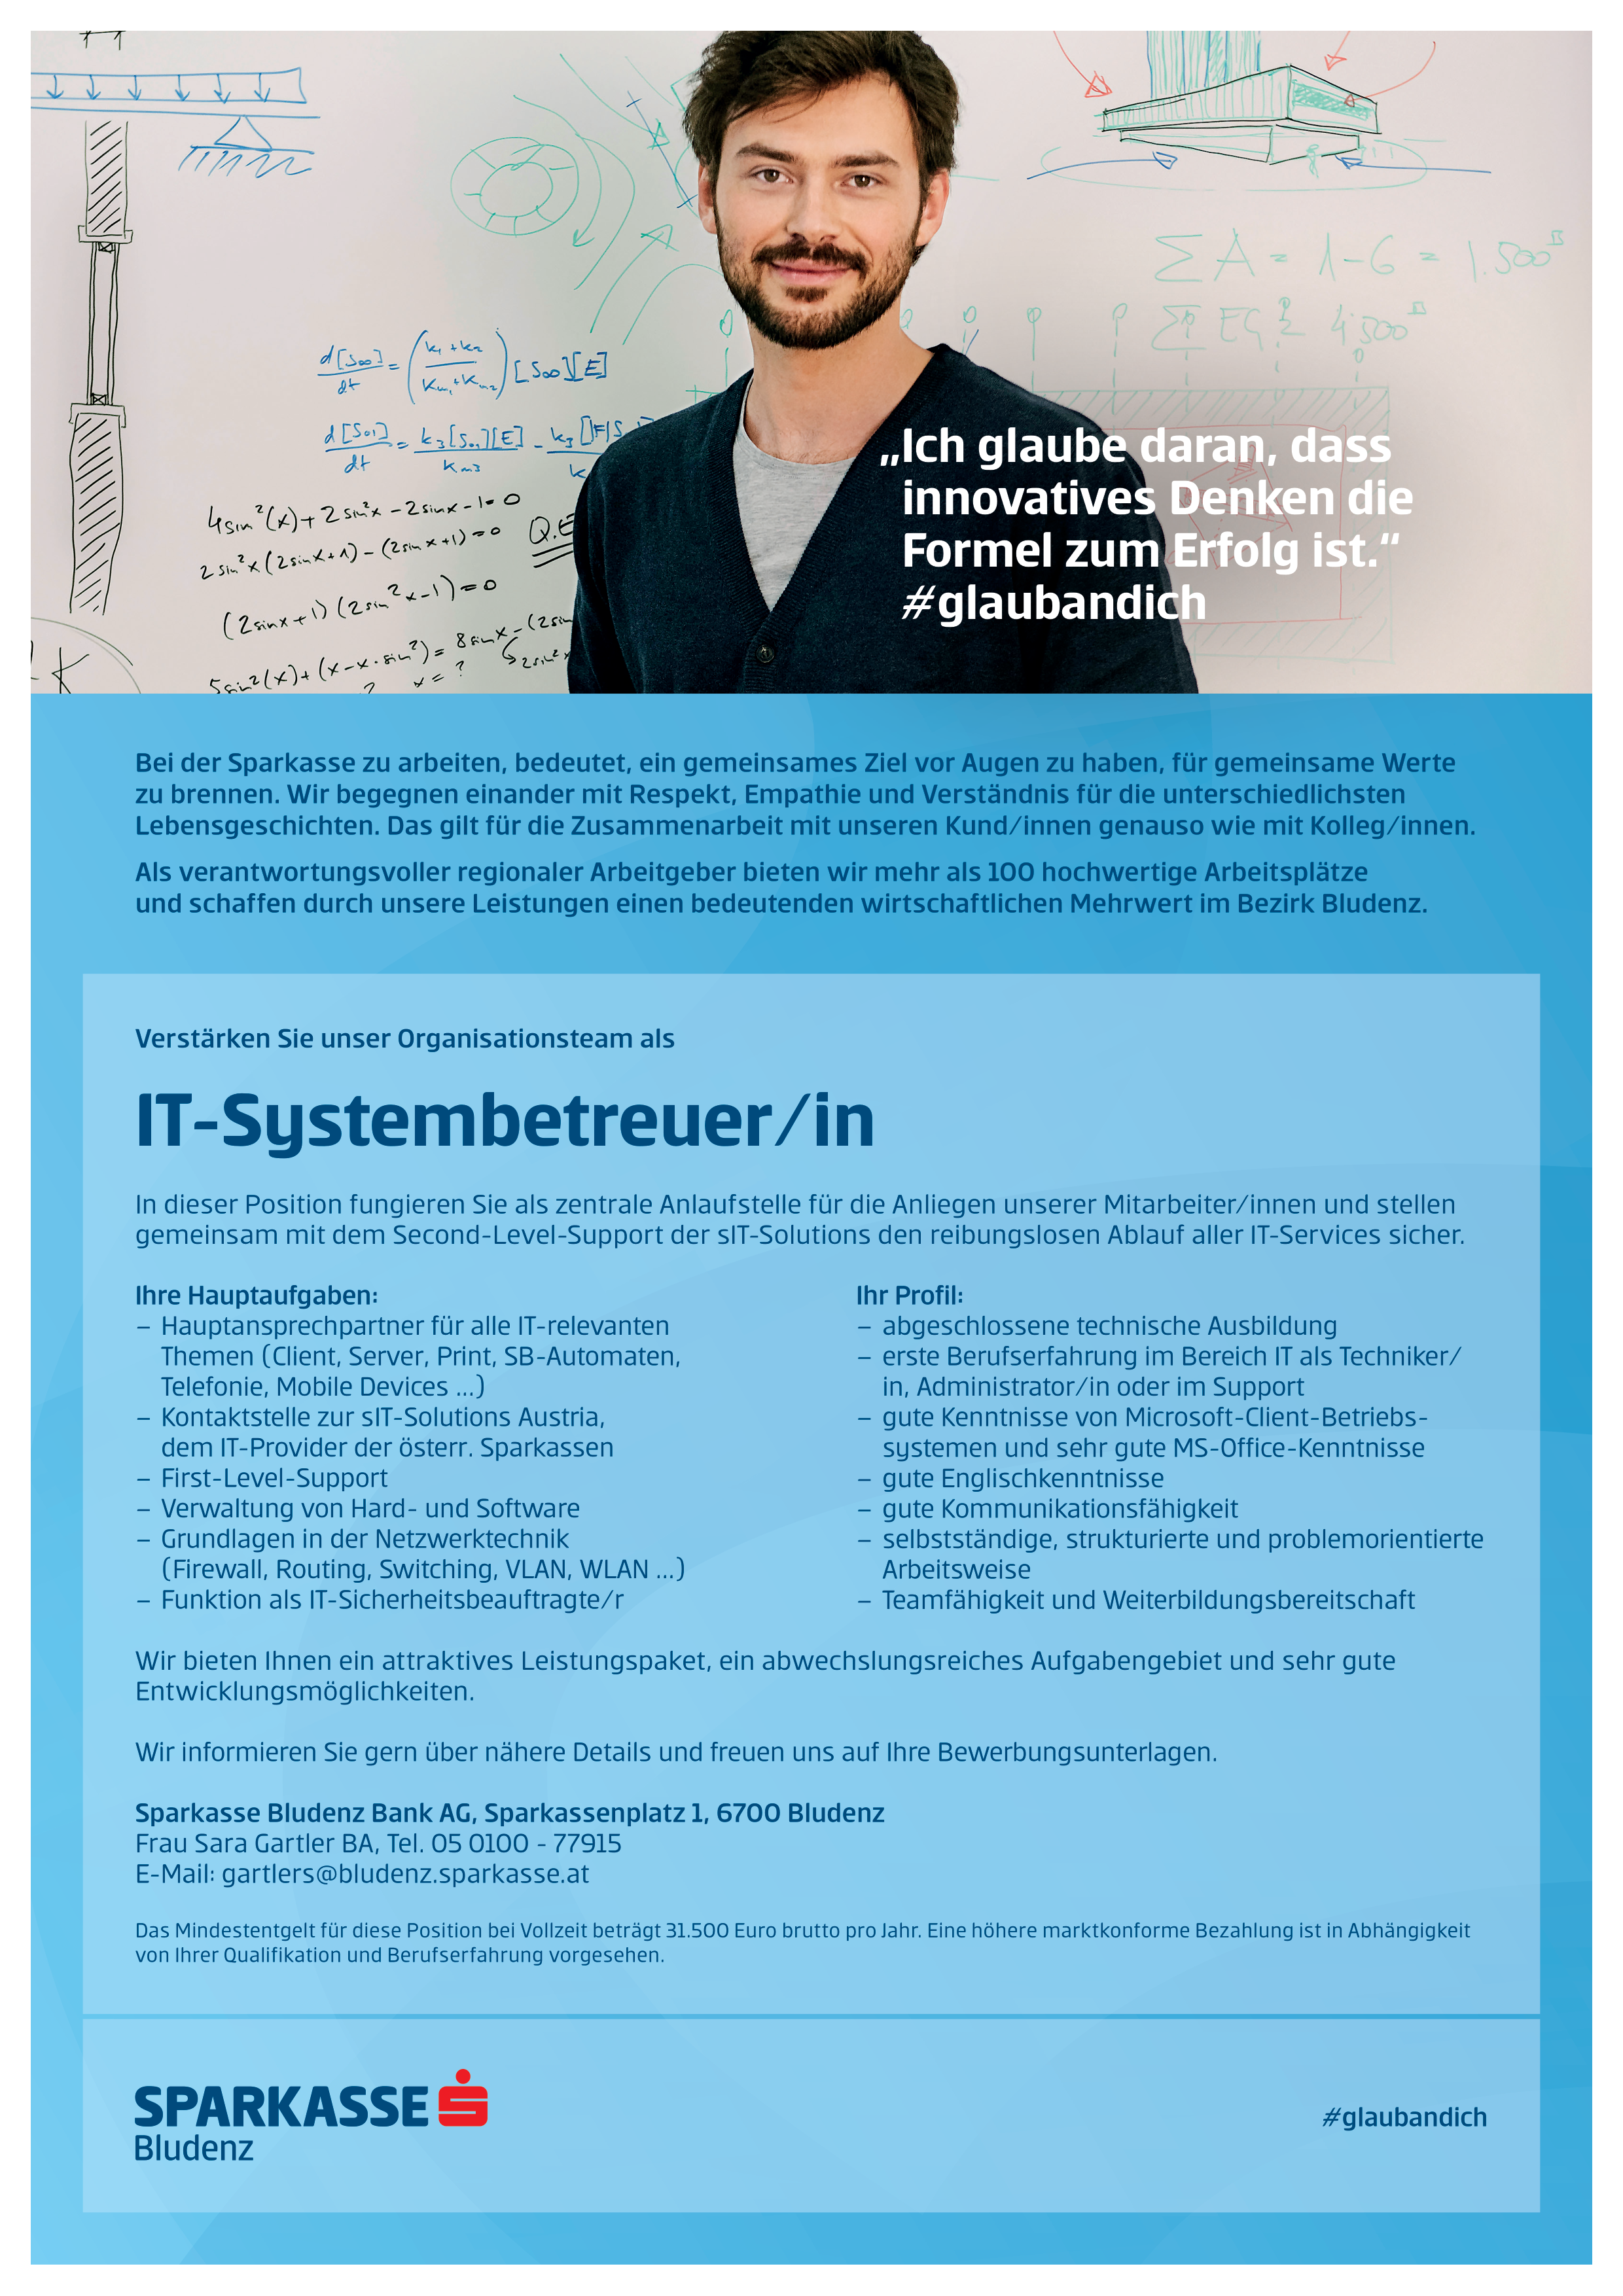 IT-Systembetreuer/in